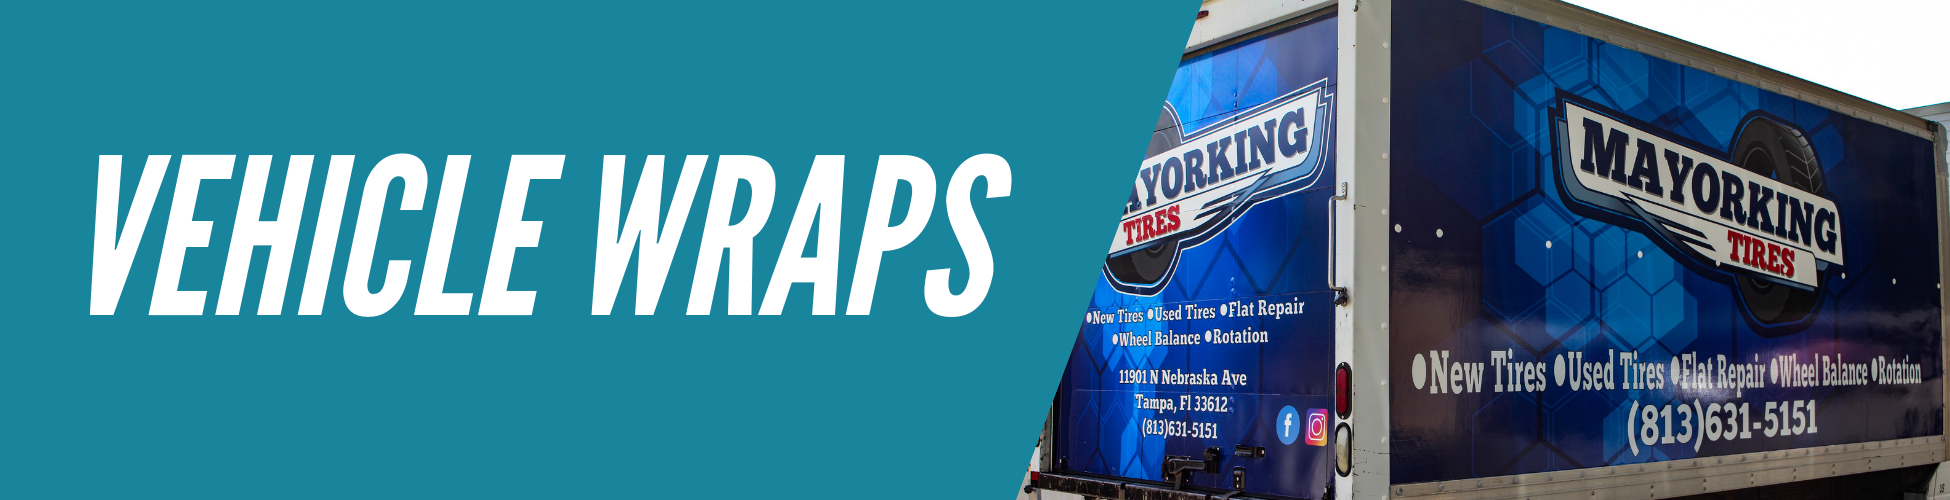 vehicle-wraps-banner-v3.png